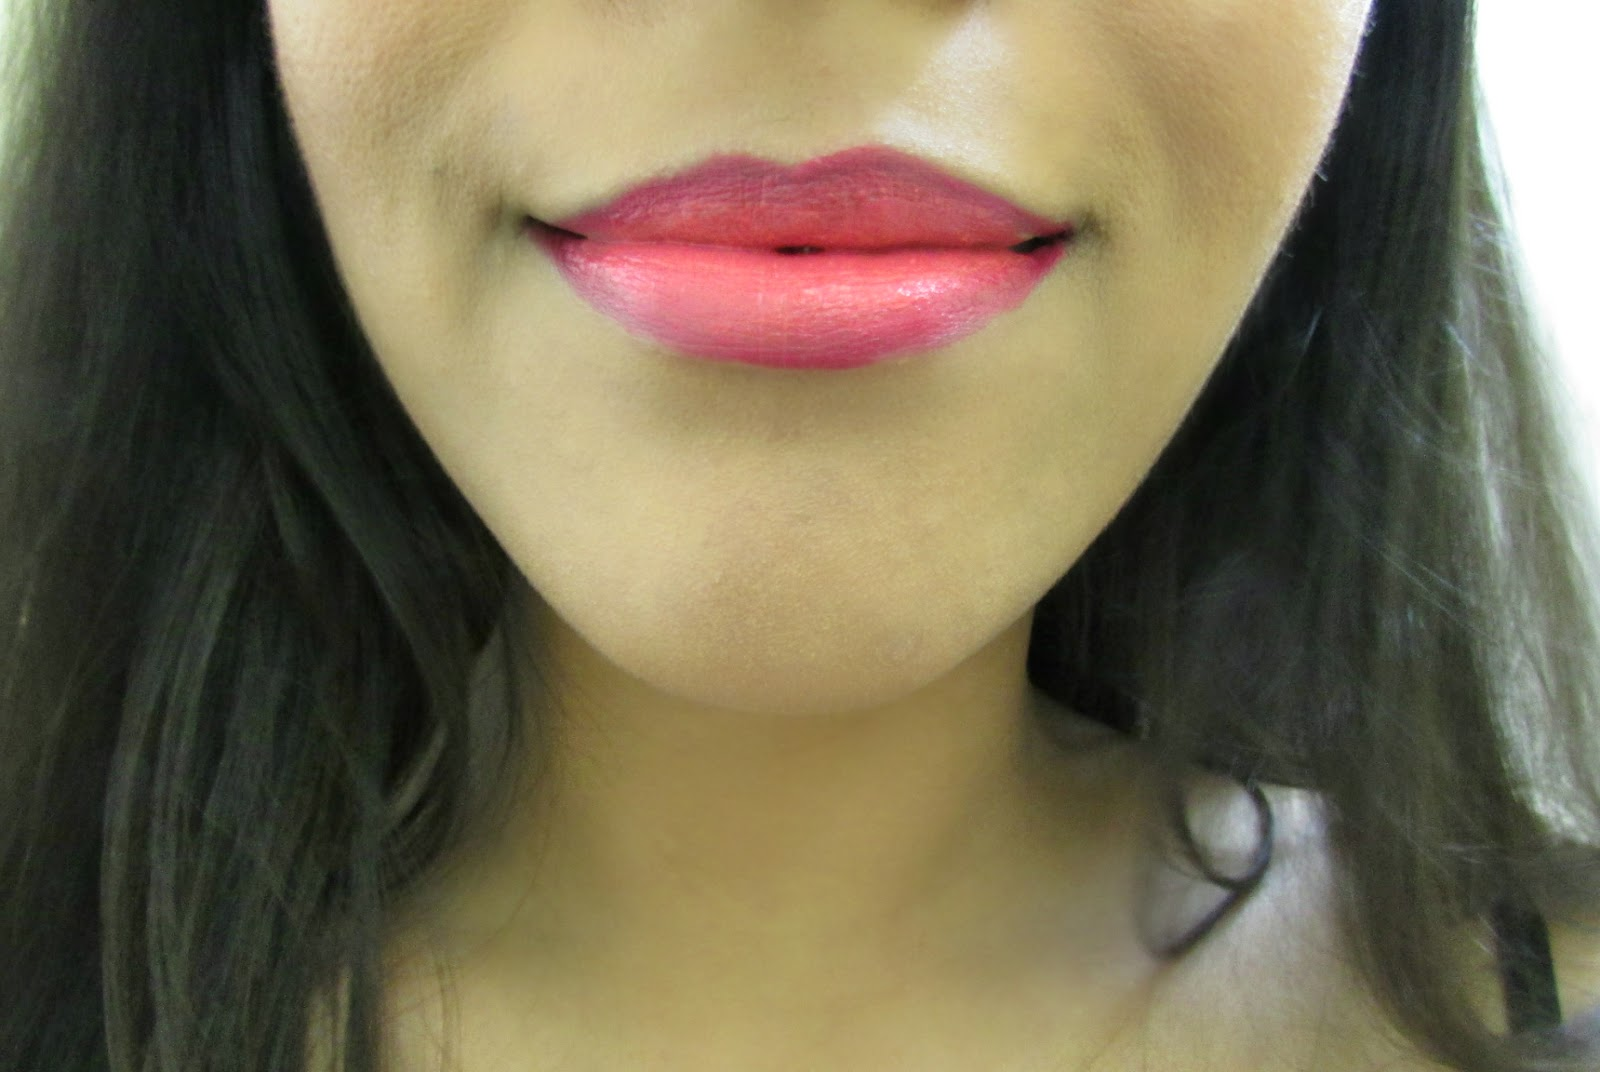 Pink, pink lips, hot pink lips, neon pink, hot pink, neon pink lips , pink ombré lips, hot pink ombré lips, neon pink ombré lips, wearable pink lips, wearable pink ombré lips, wearable ombré lips, daily lipsticks, ombré , how to do ombré lips, easy ombré lips, easy ombré lips tutorial, easy pink ombré lips, how to do pink ombré lips, subtle ombré lips, wearable ombré lips, wearable pink ombré lips, wearable red ombré lips, how to do ombré lips at home,maybelline, mua , maybelline lipstick, maybelline matt lipstick,mua hot pink lipstick, maybelline neon pink lipstick